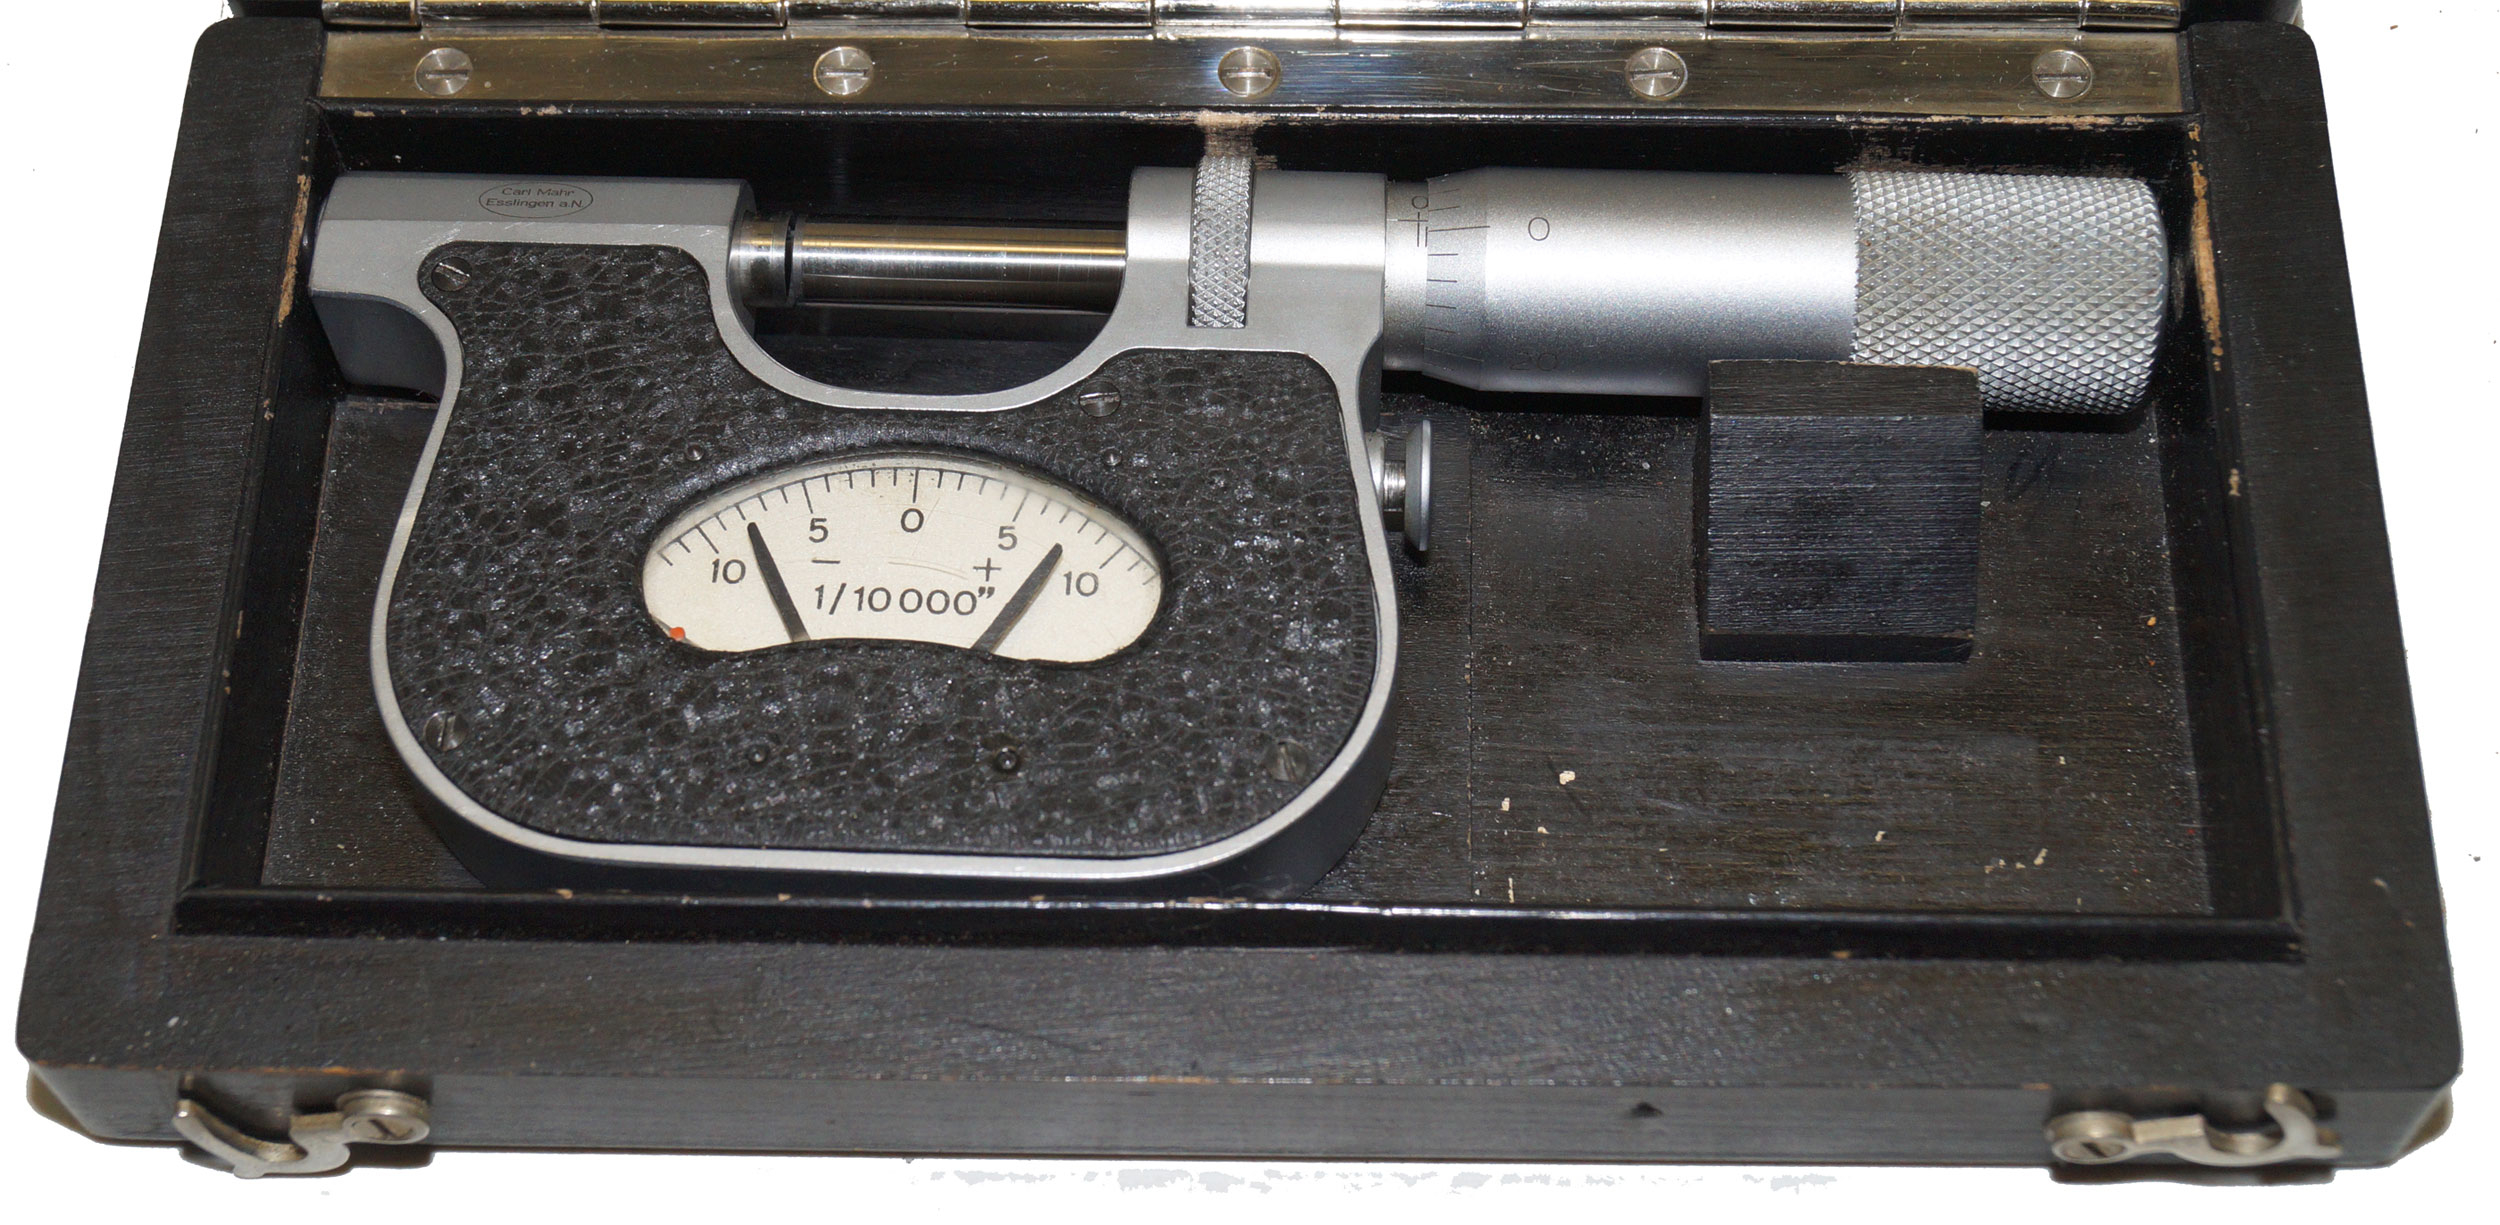 "Mahr 0-1"" Indicating Micrometer 1/10,000"